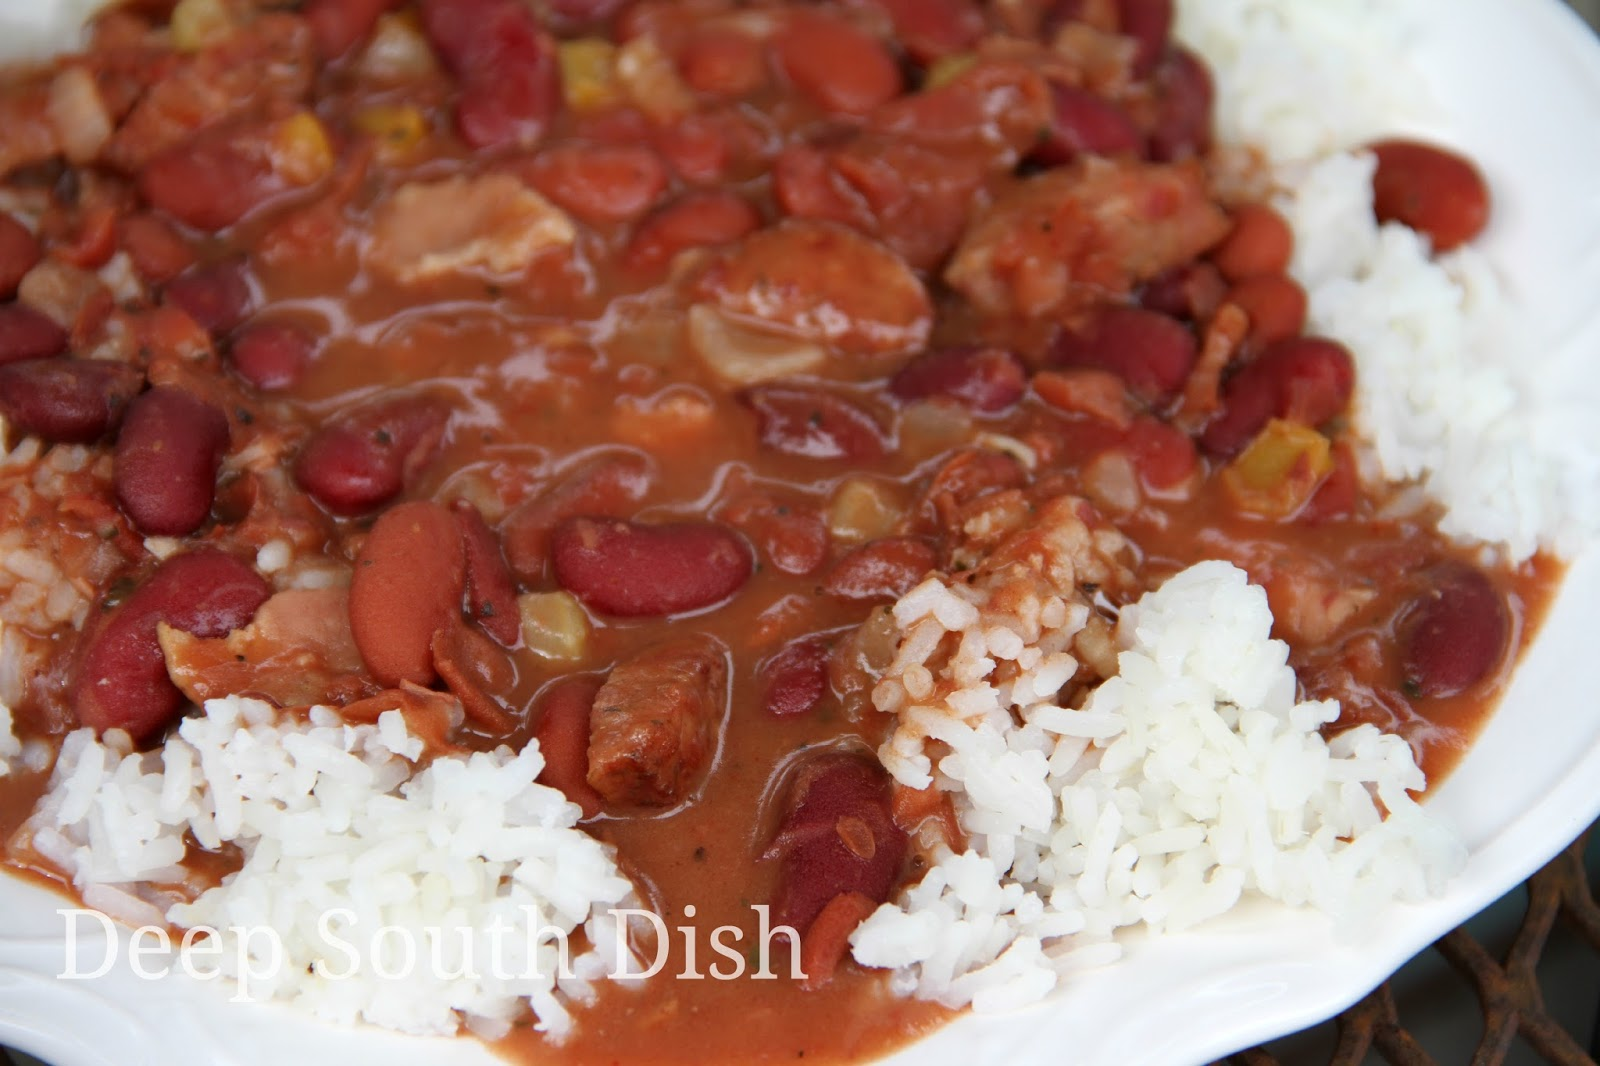 A quicker version of Red Beans and Rice made with The Trinity, bacon, smoked sausage and canned kidney beans, preferably Blue Runner brand. You will hardly believe they're a shortcut version!